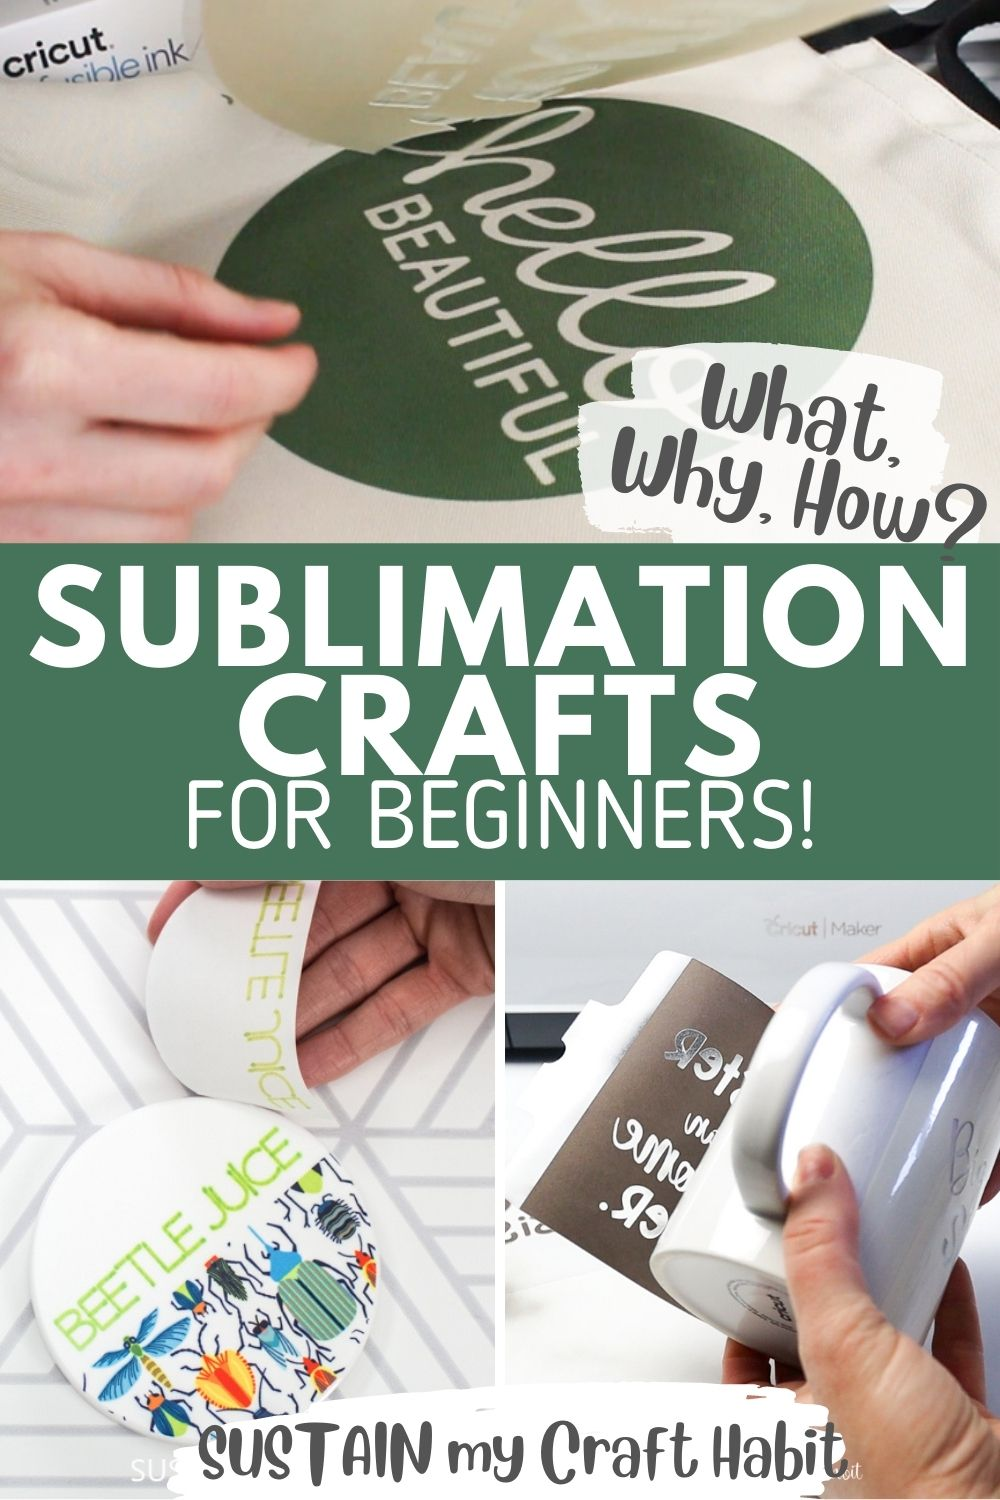 Collage of images with text overlay reading sublimation crafts for beginners.